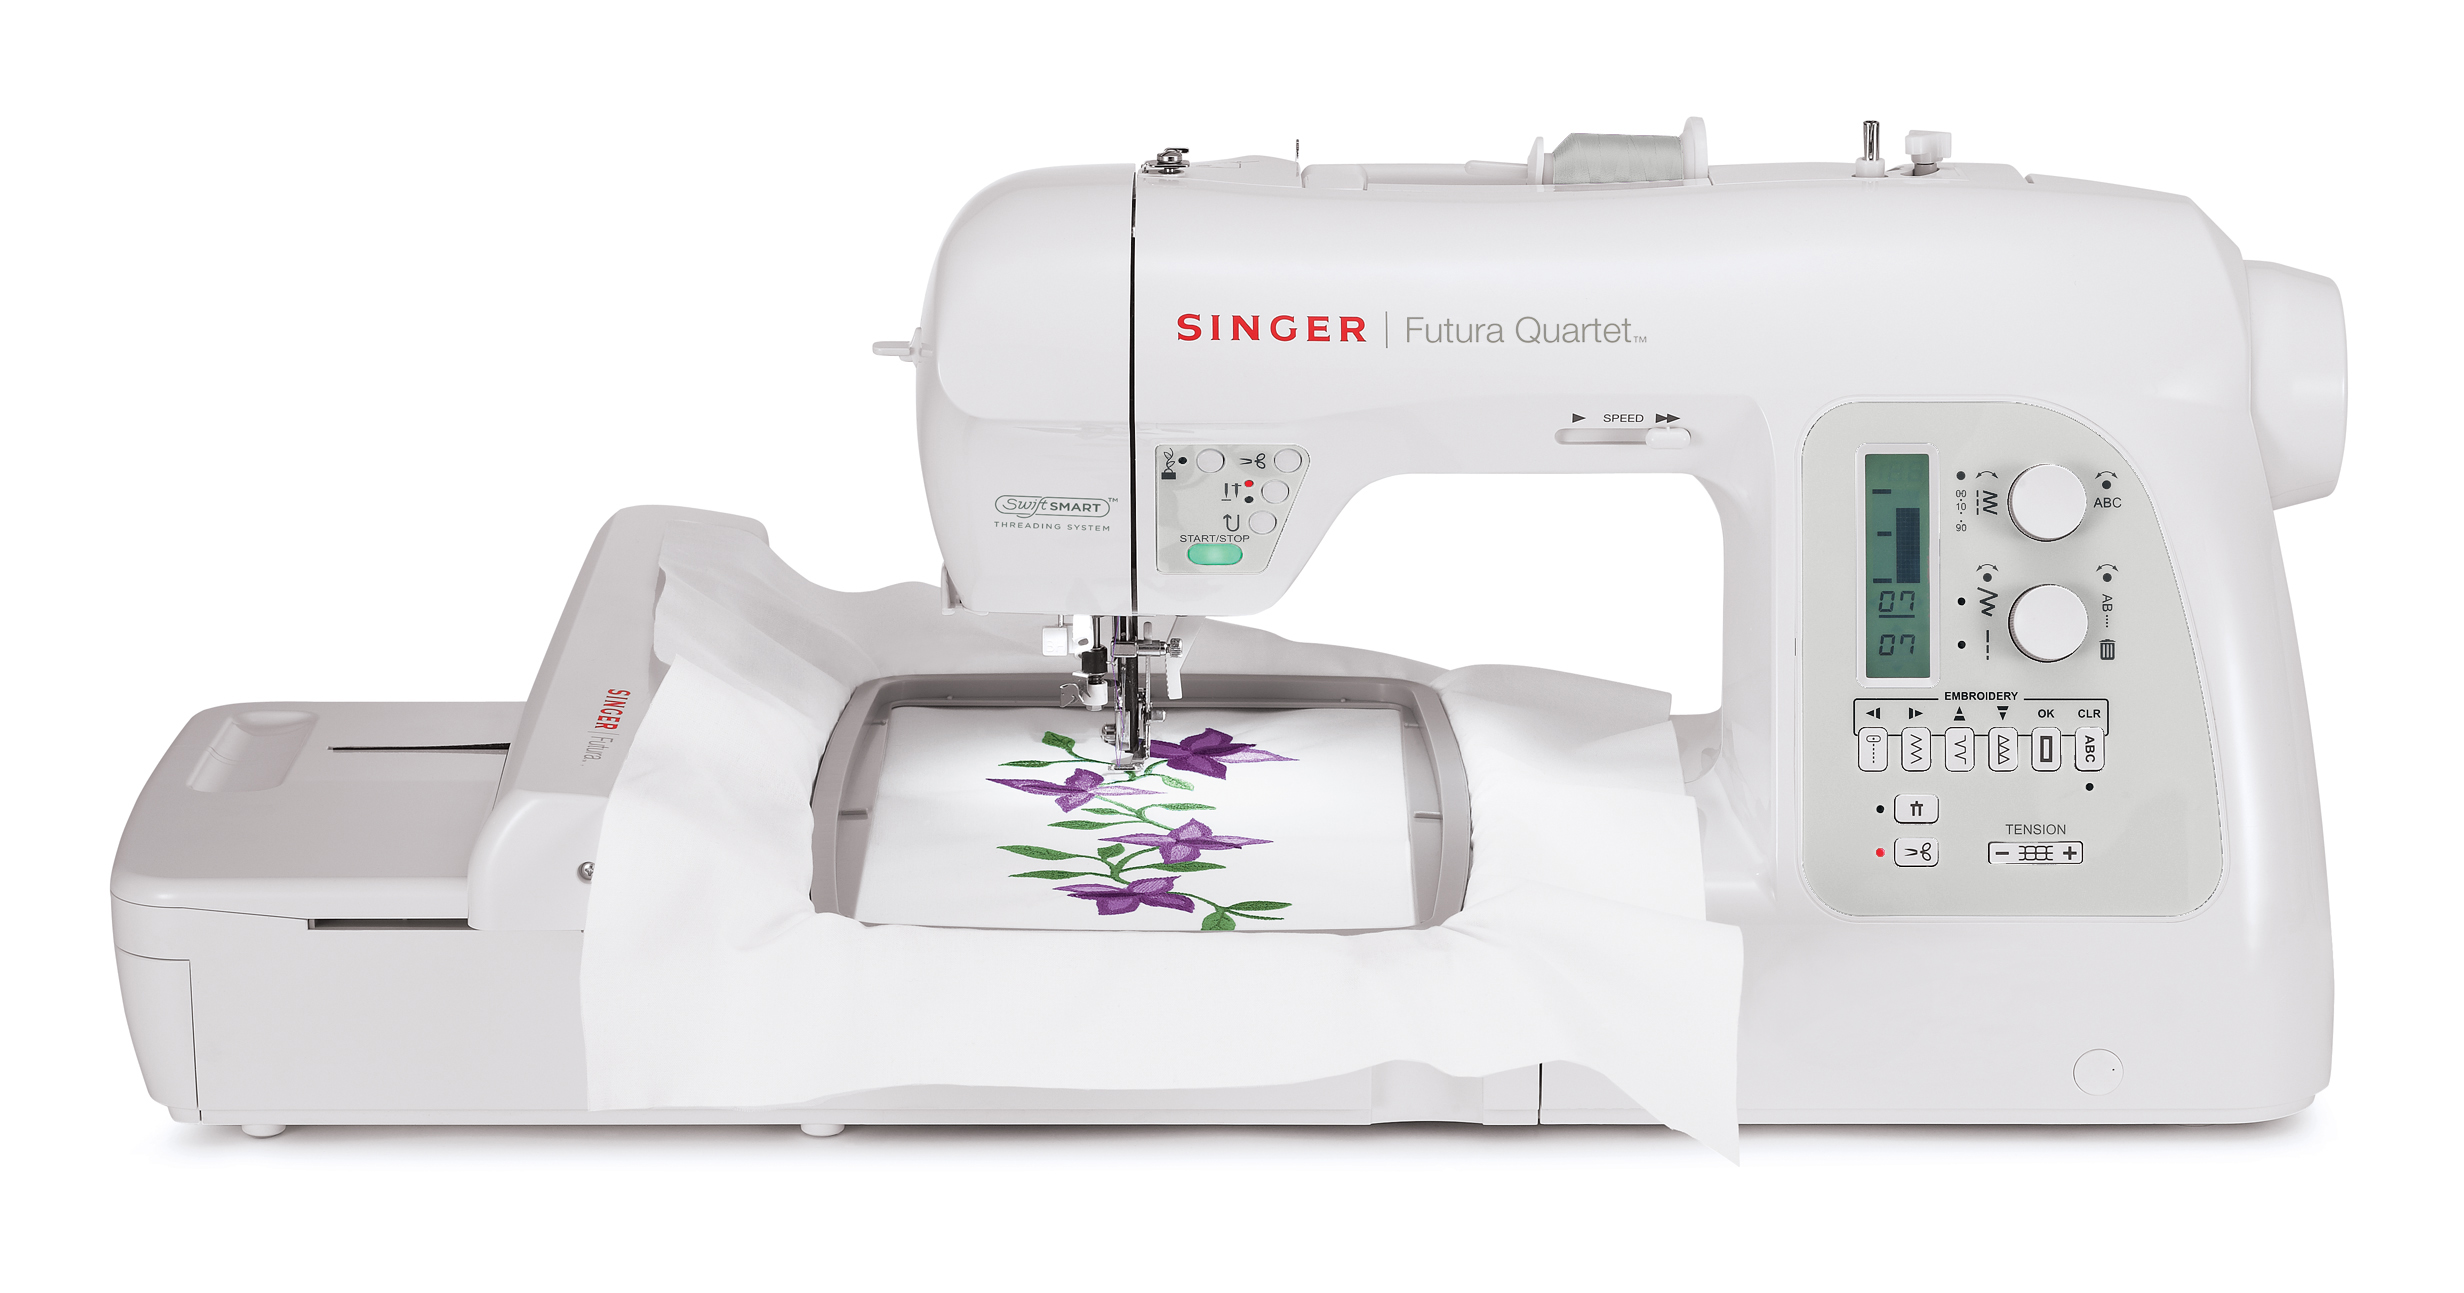 Singer futura support is sewing made easy™